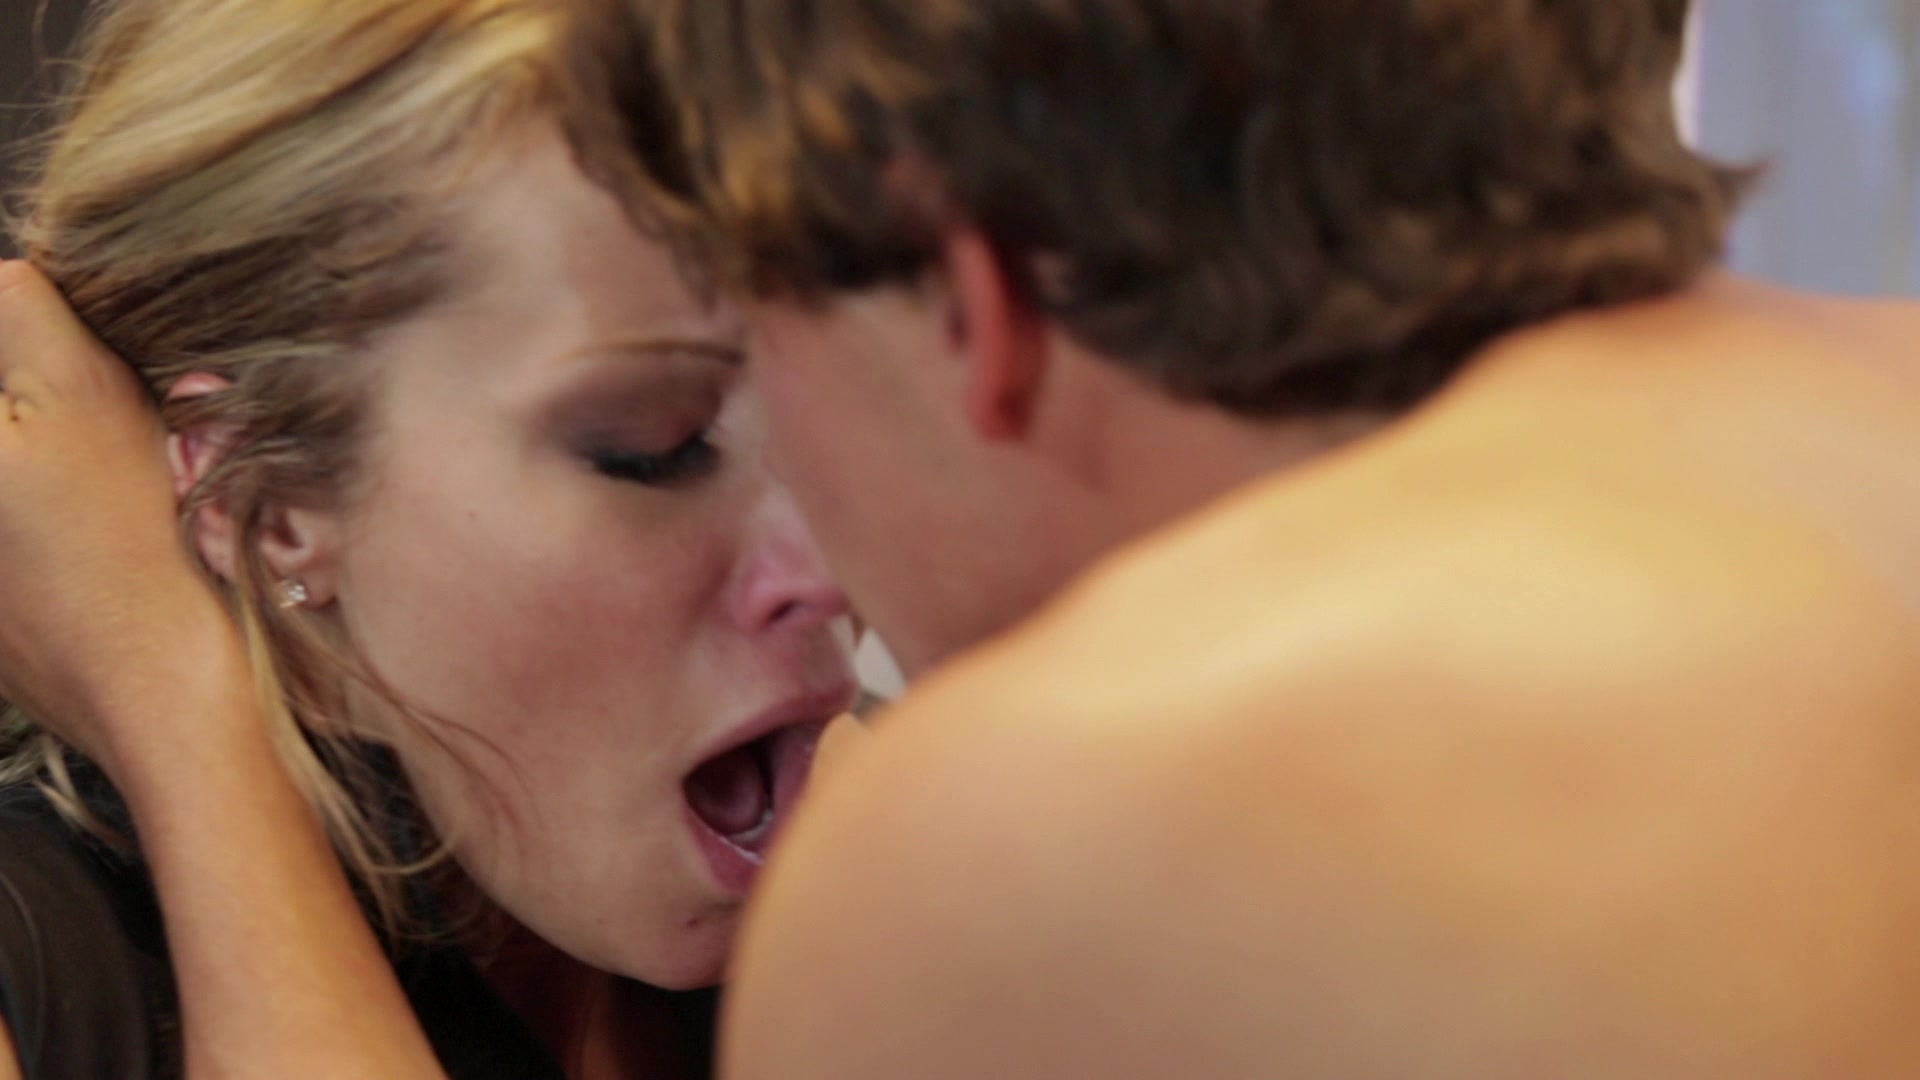 Aftermath Porn Movie trailers | aftermath porn movie @ adult dvd empire